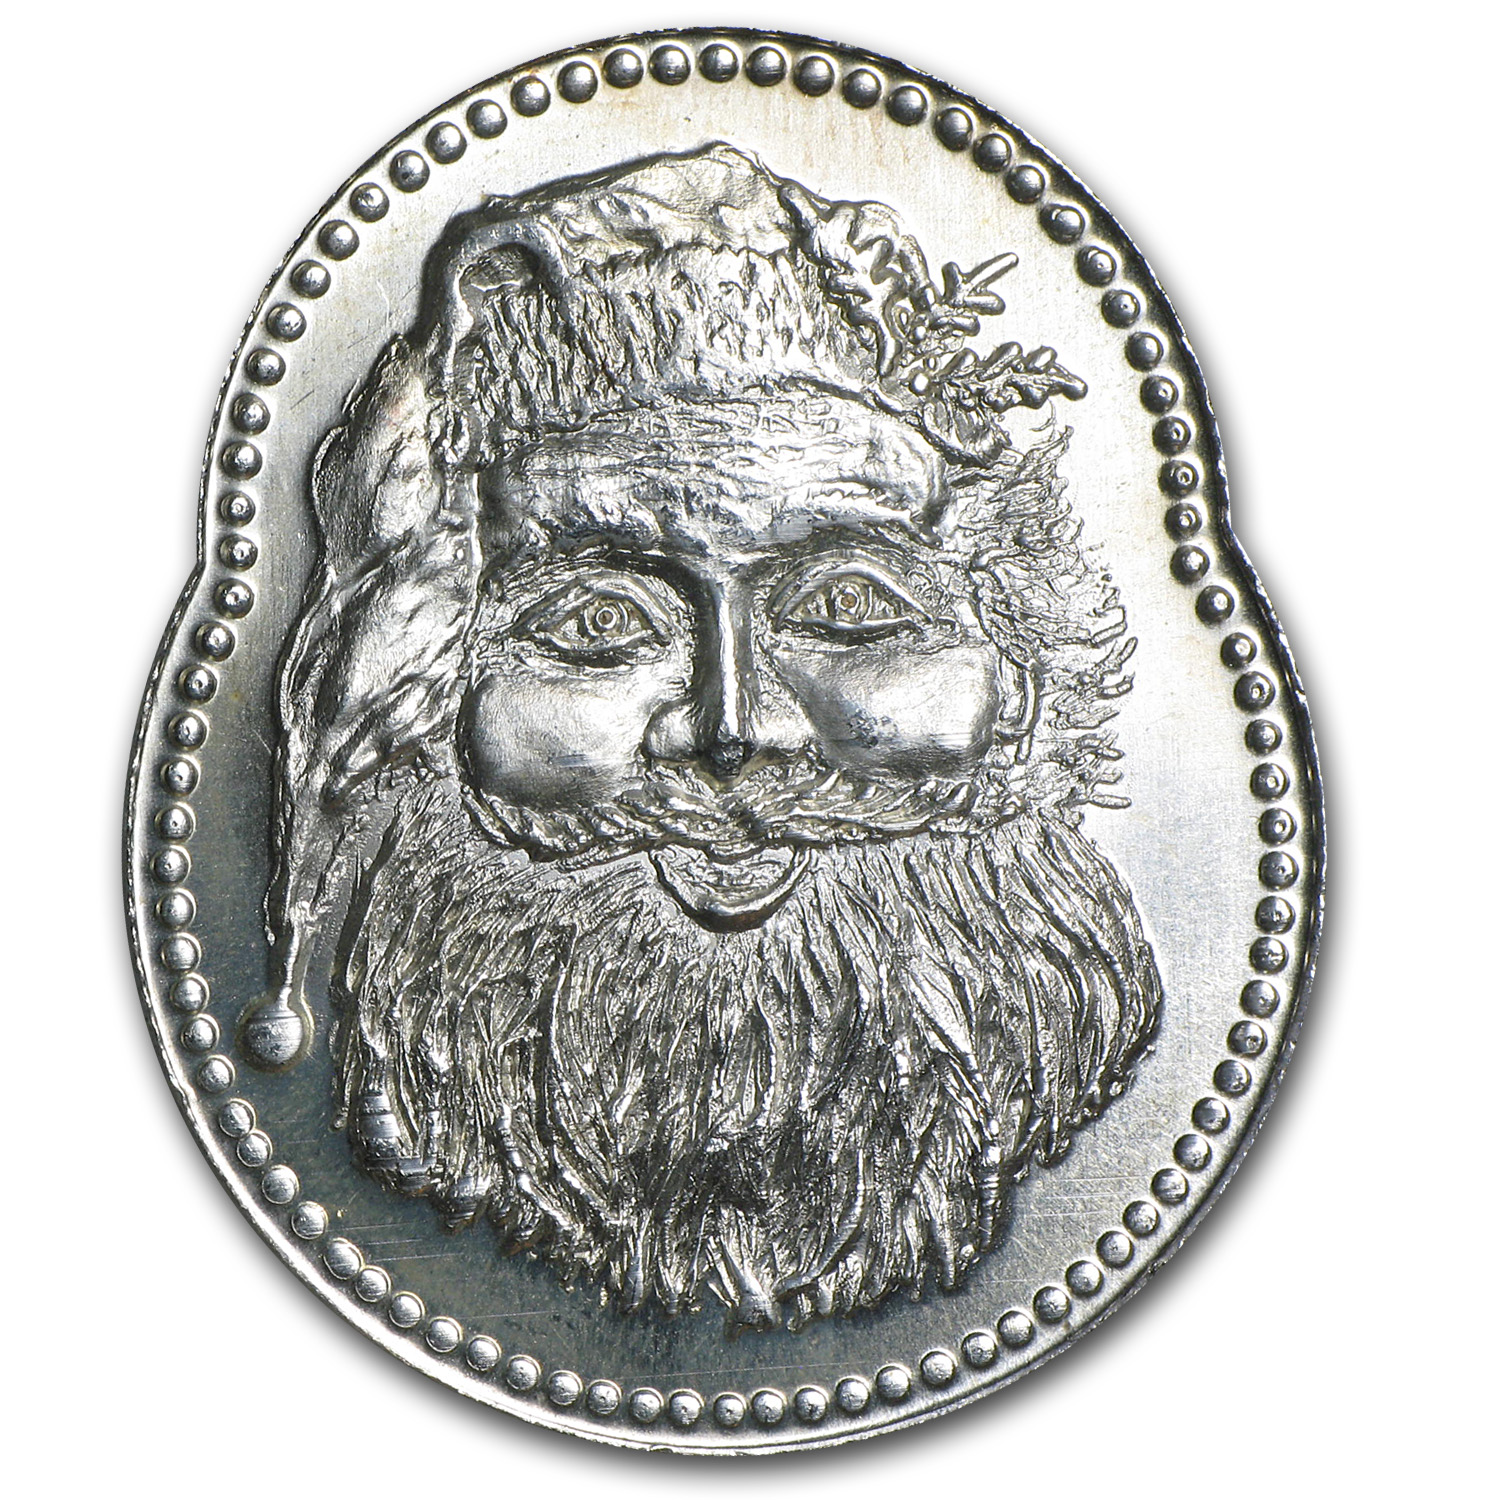 1 oz Silver Oval - Santa Claus (Christmas)